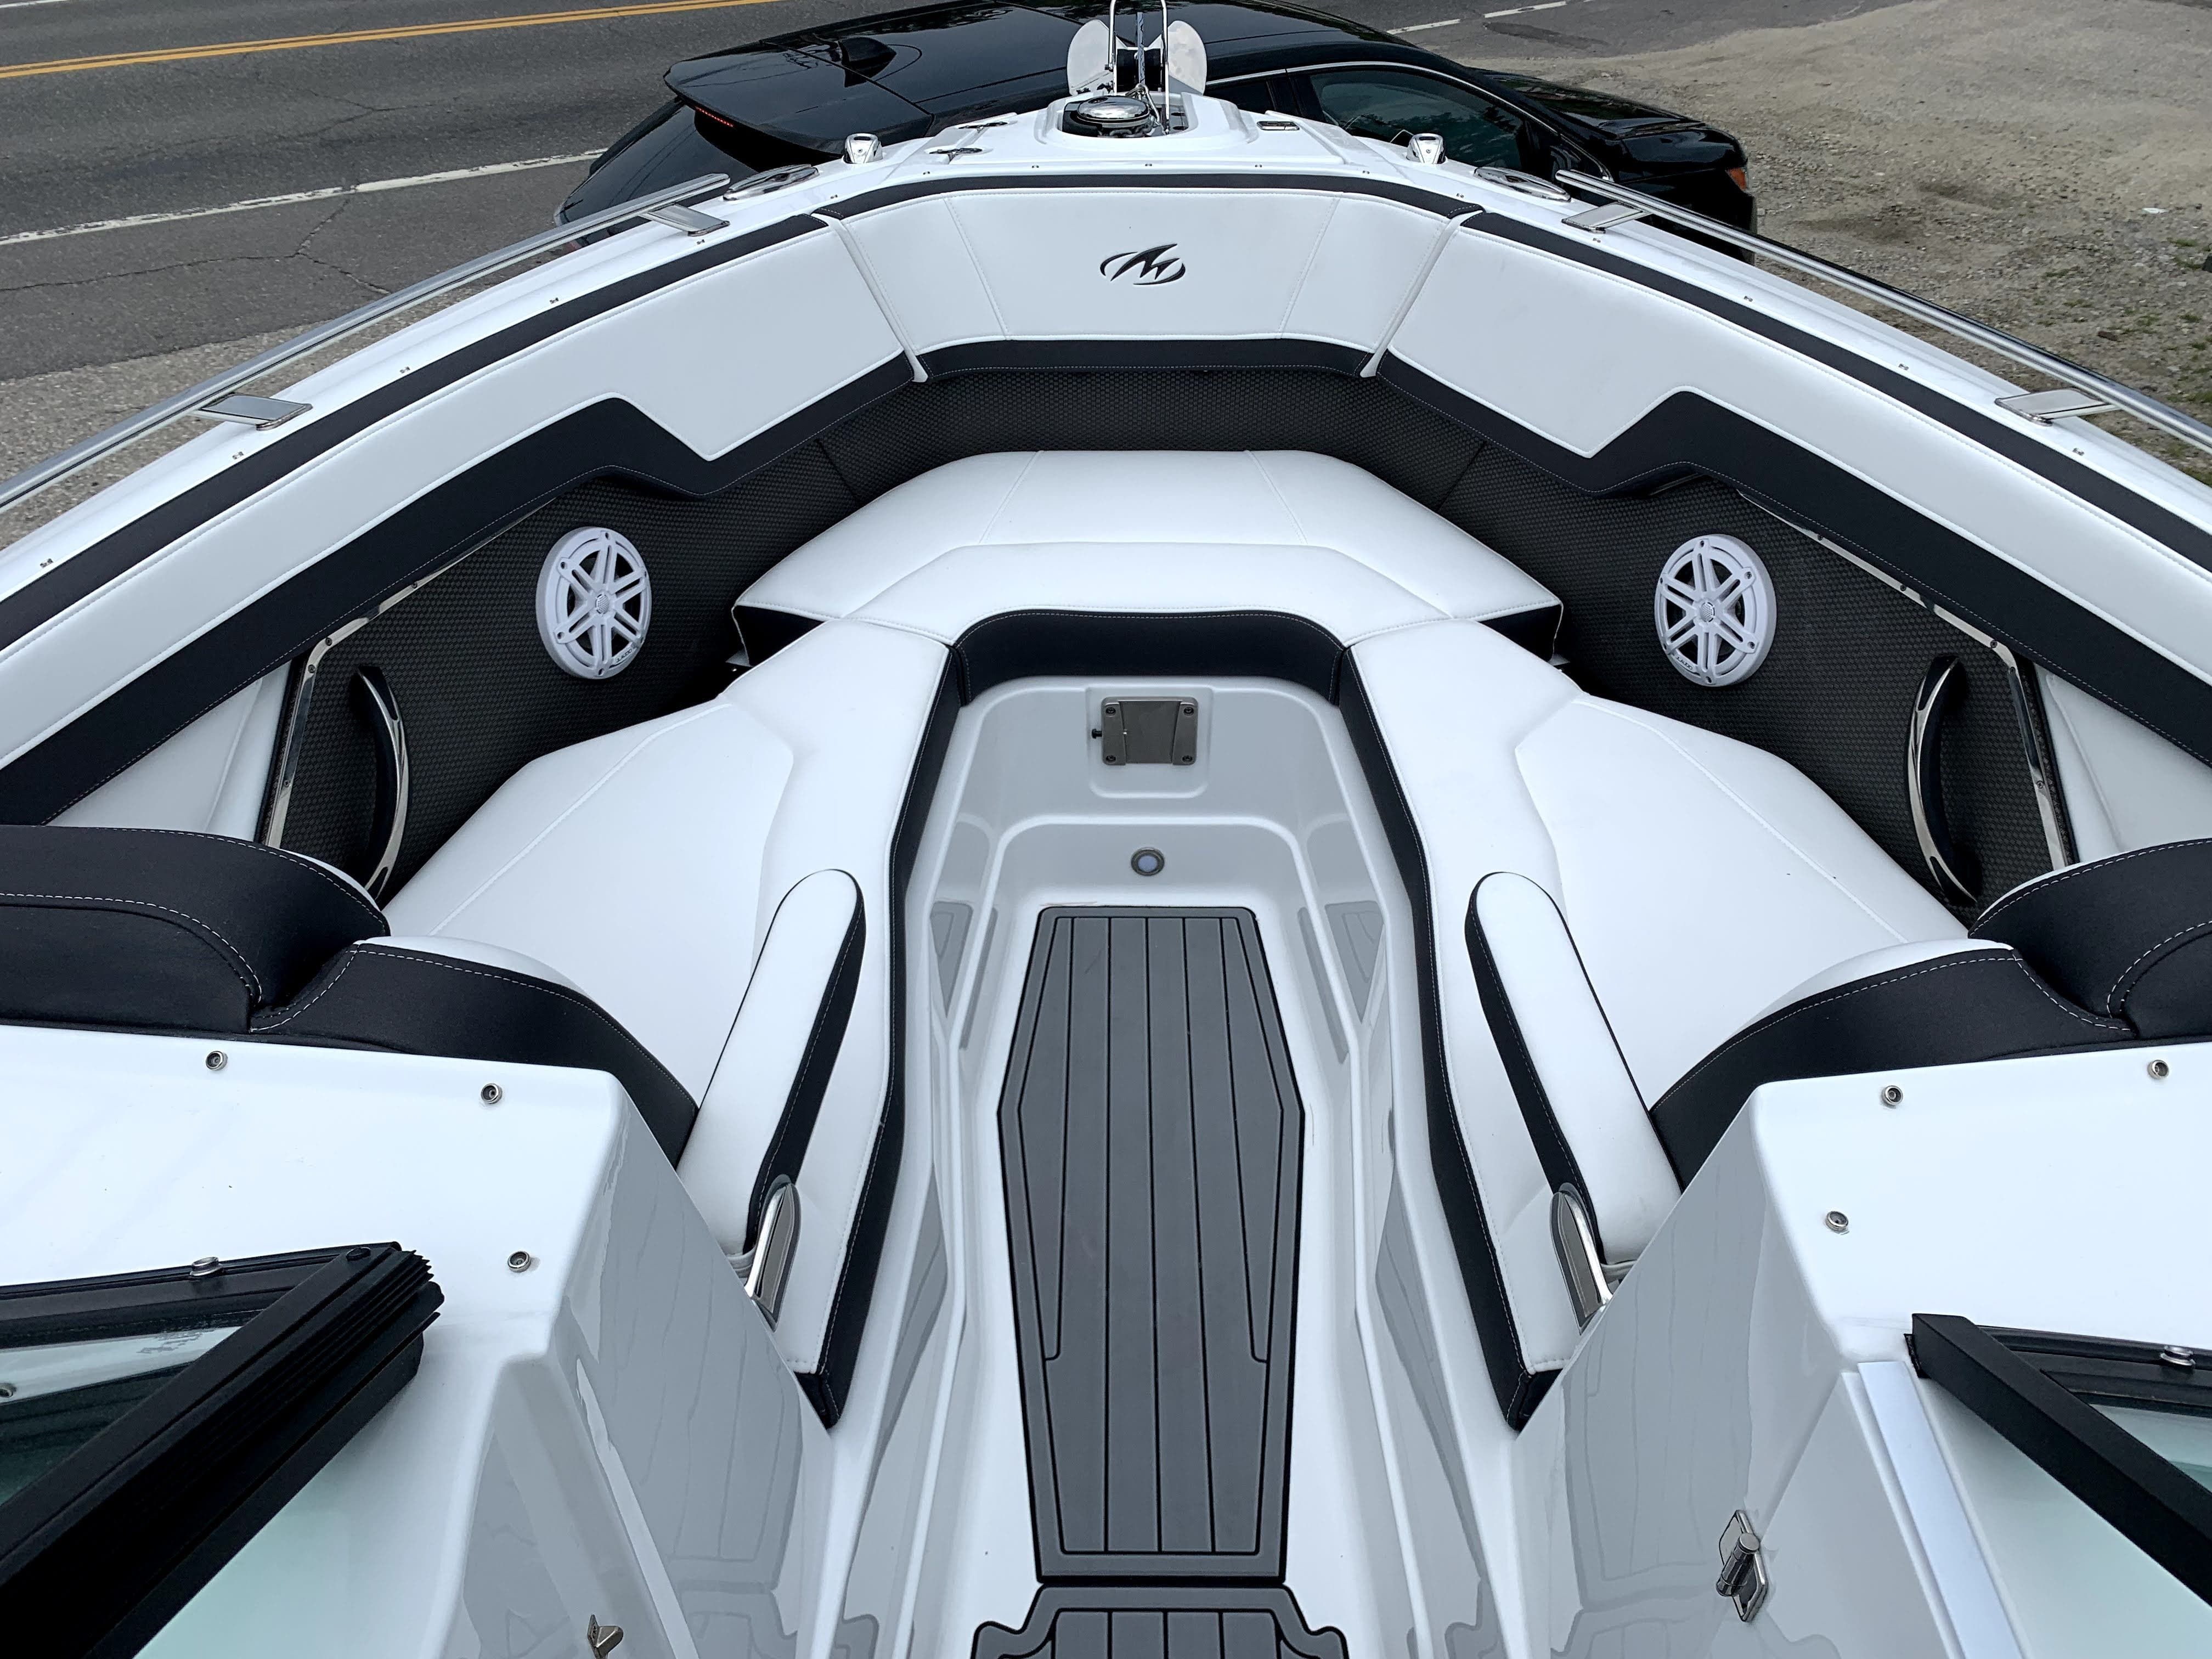 2022 Monterey boat for sale, model of the boat is 278SS & Image # 11 of 14